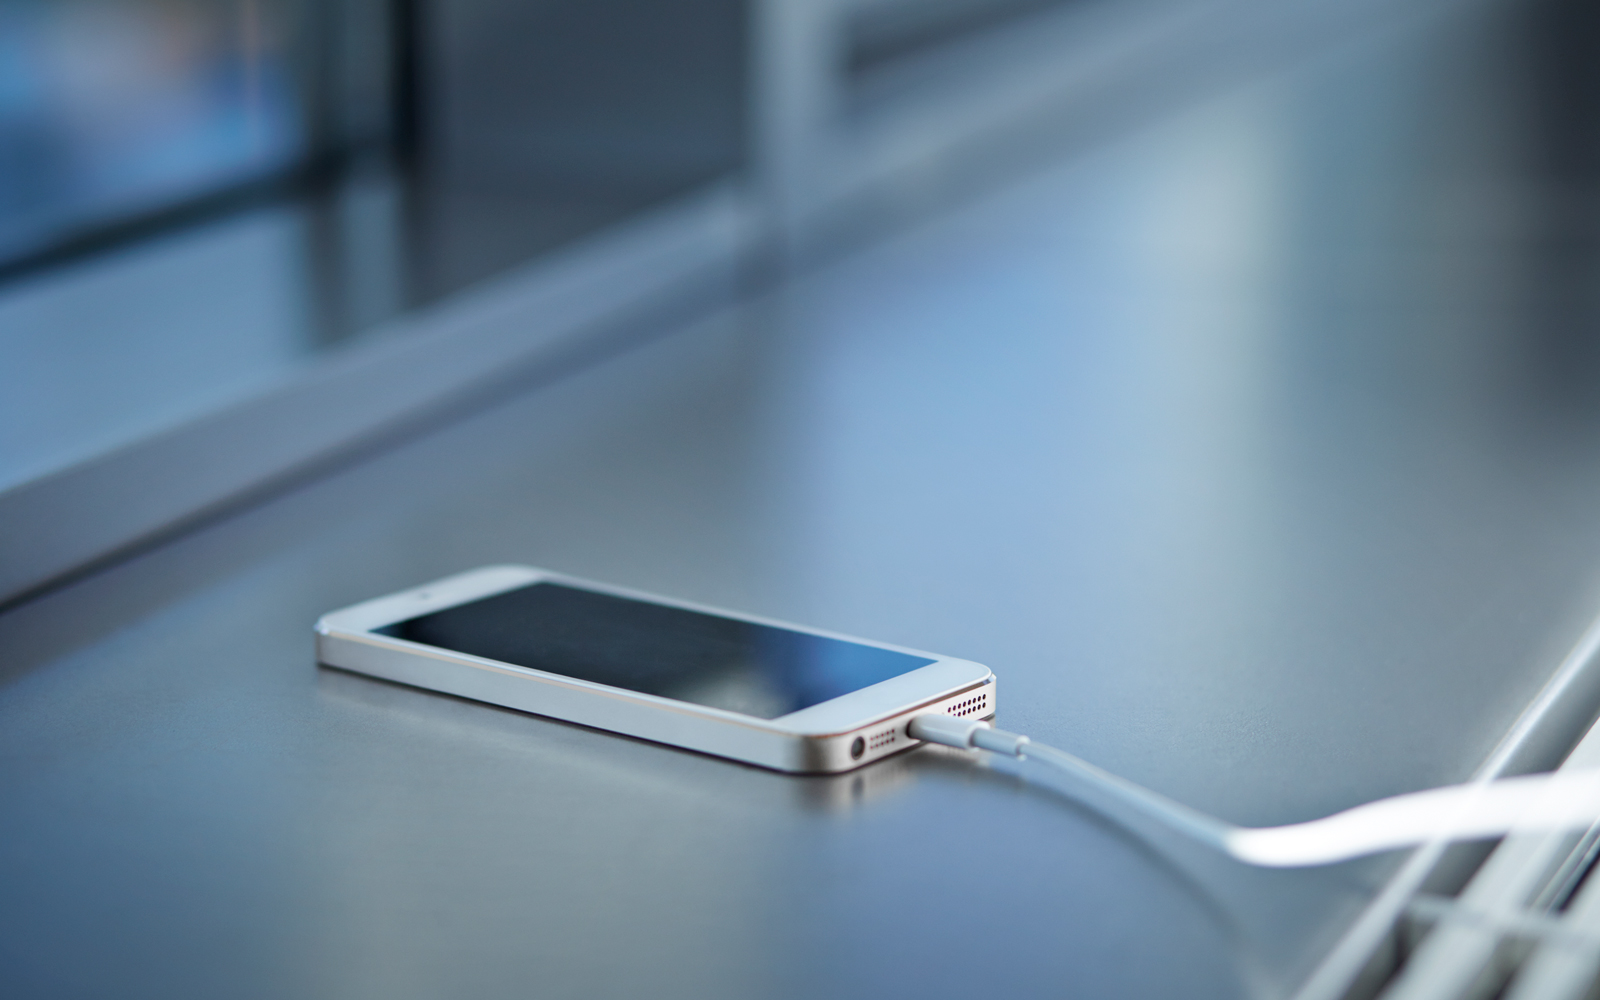 iPhone 8 Rumors: Apple May Ditch Lightning Port for USB-C